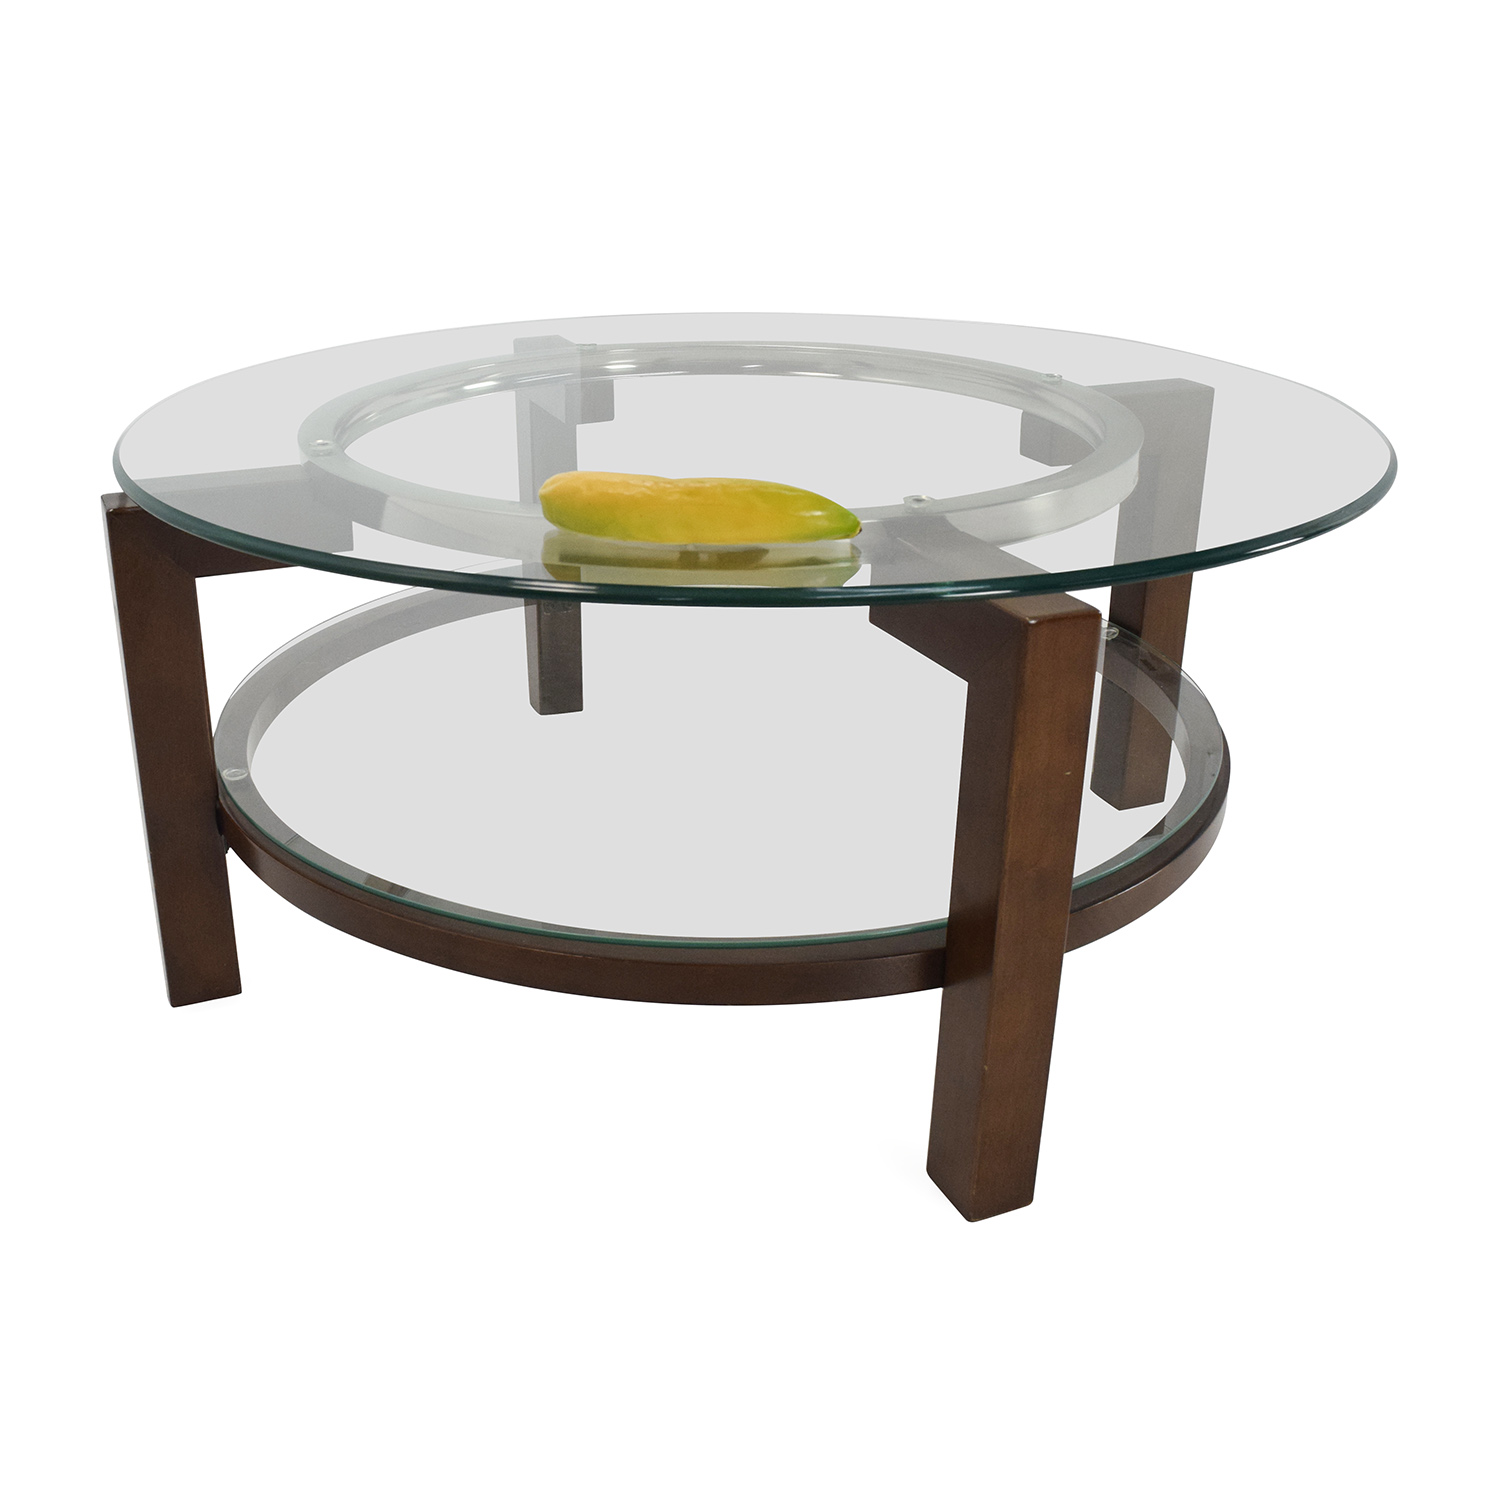 88 off macy 39 s macy 39 s glass top coffee table tables Coffee table buy